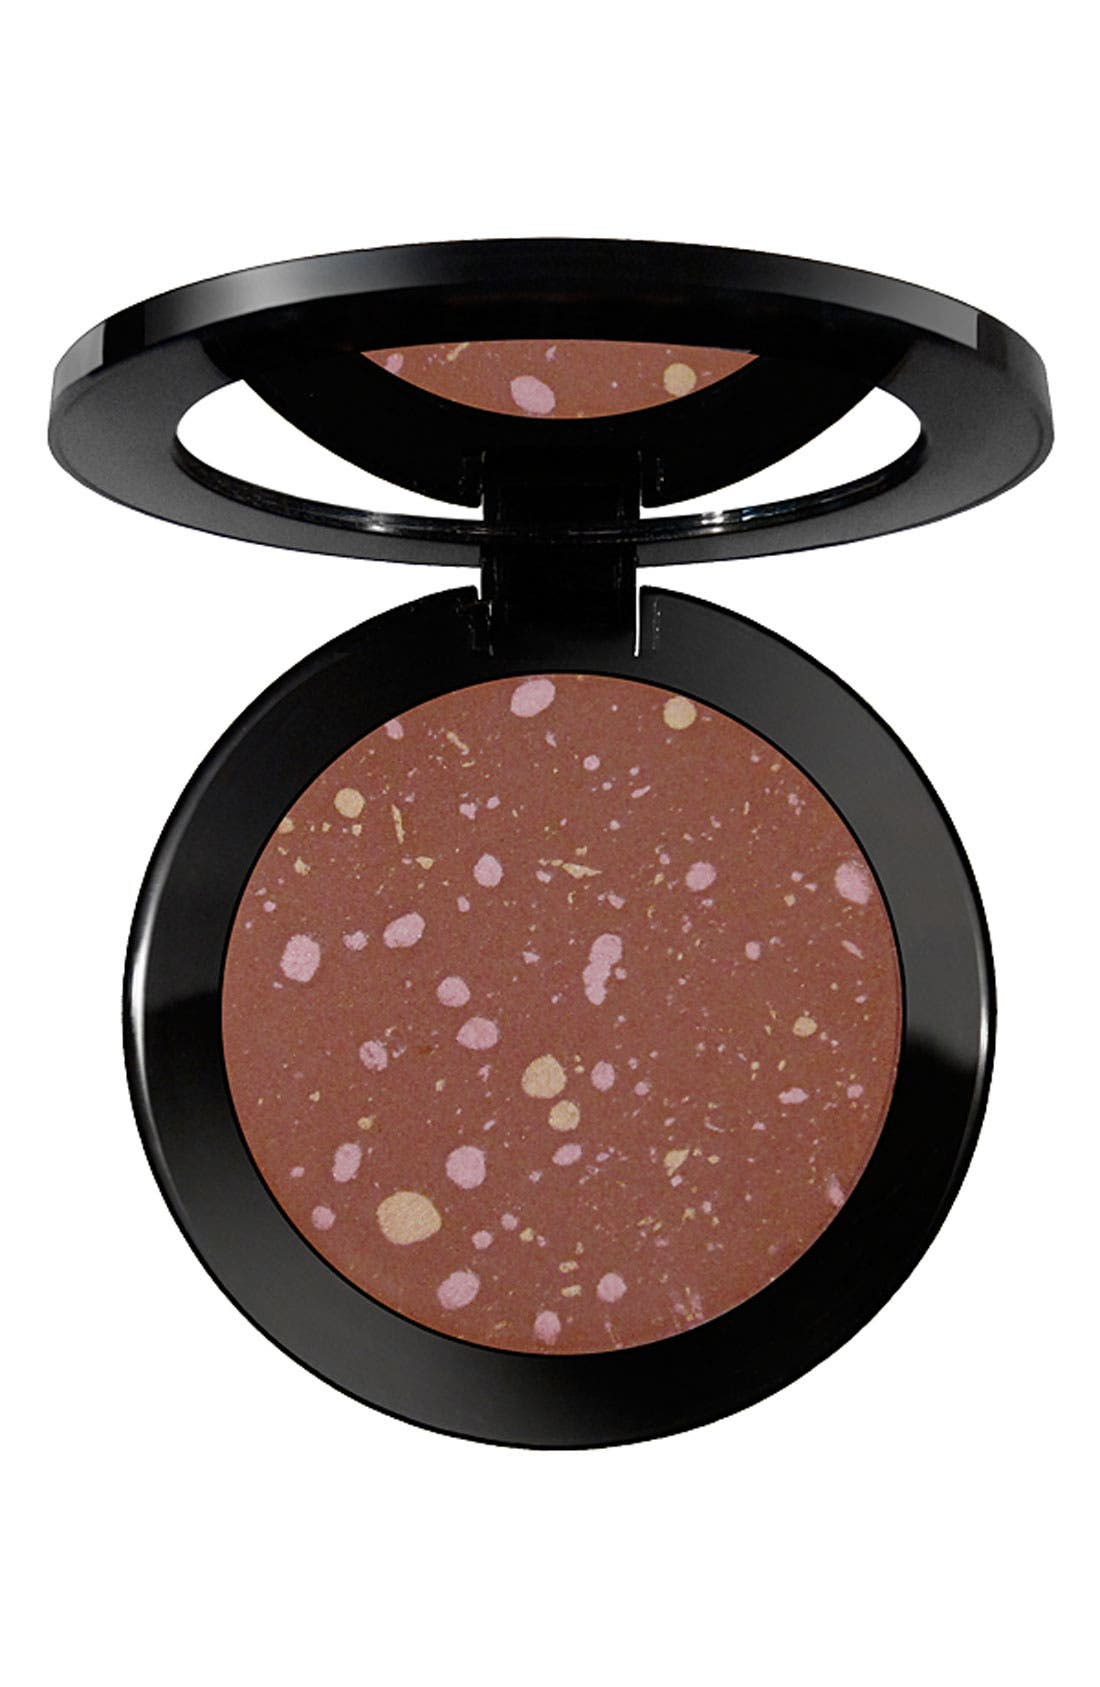 'Dewdrop' Radiant Blush,                             Main thumbnail 1, color,                             200